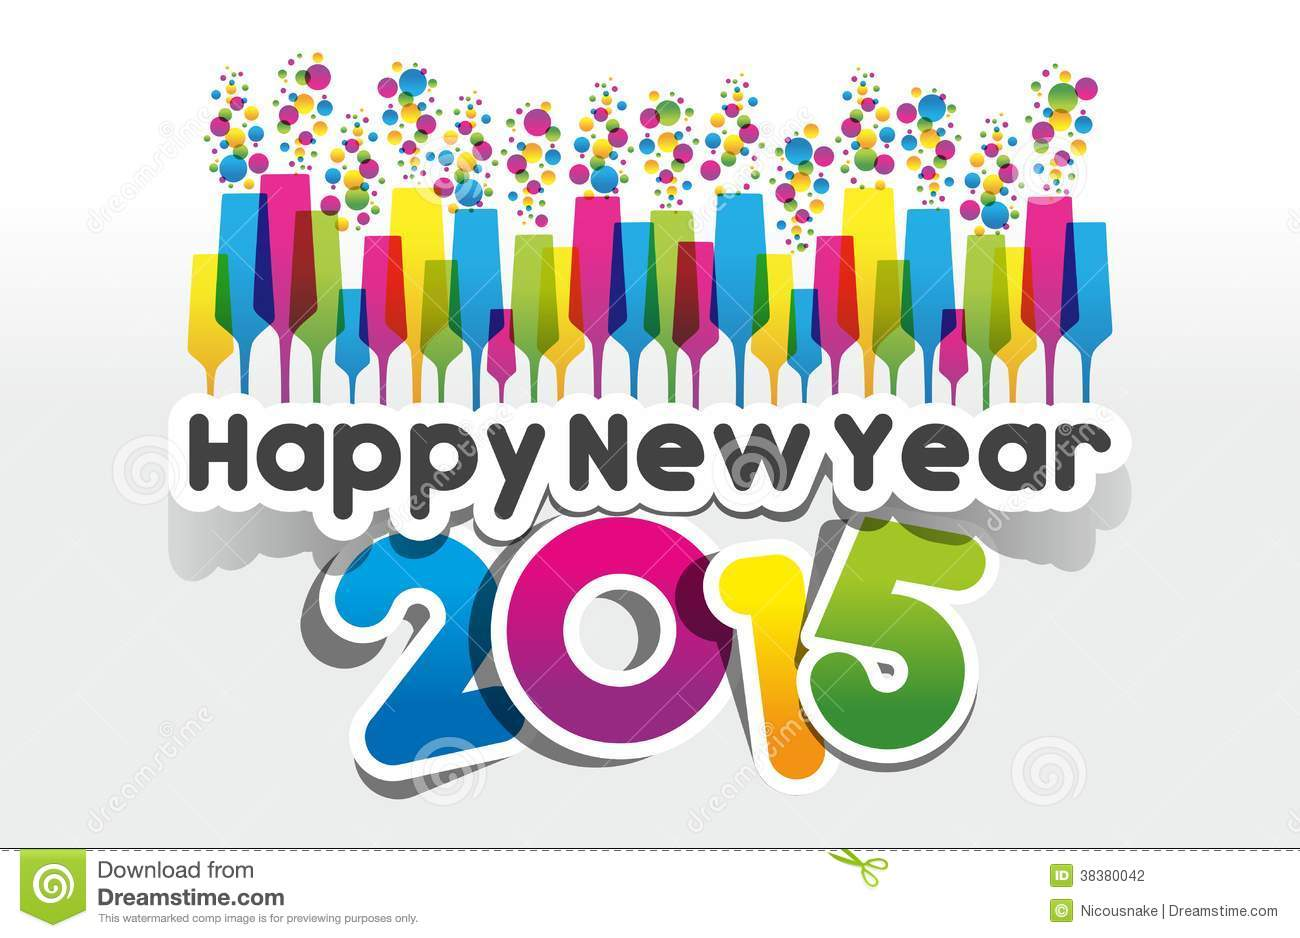 New Years Eve Clip Art 2014 New years eve   600 x 400